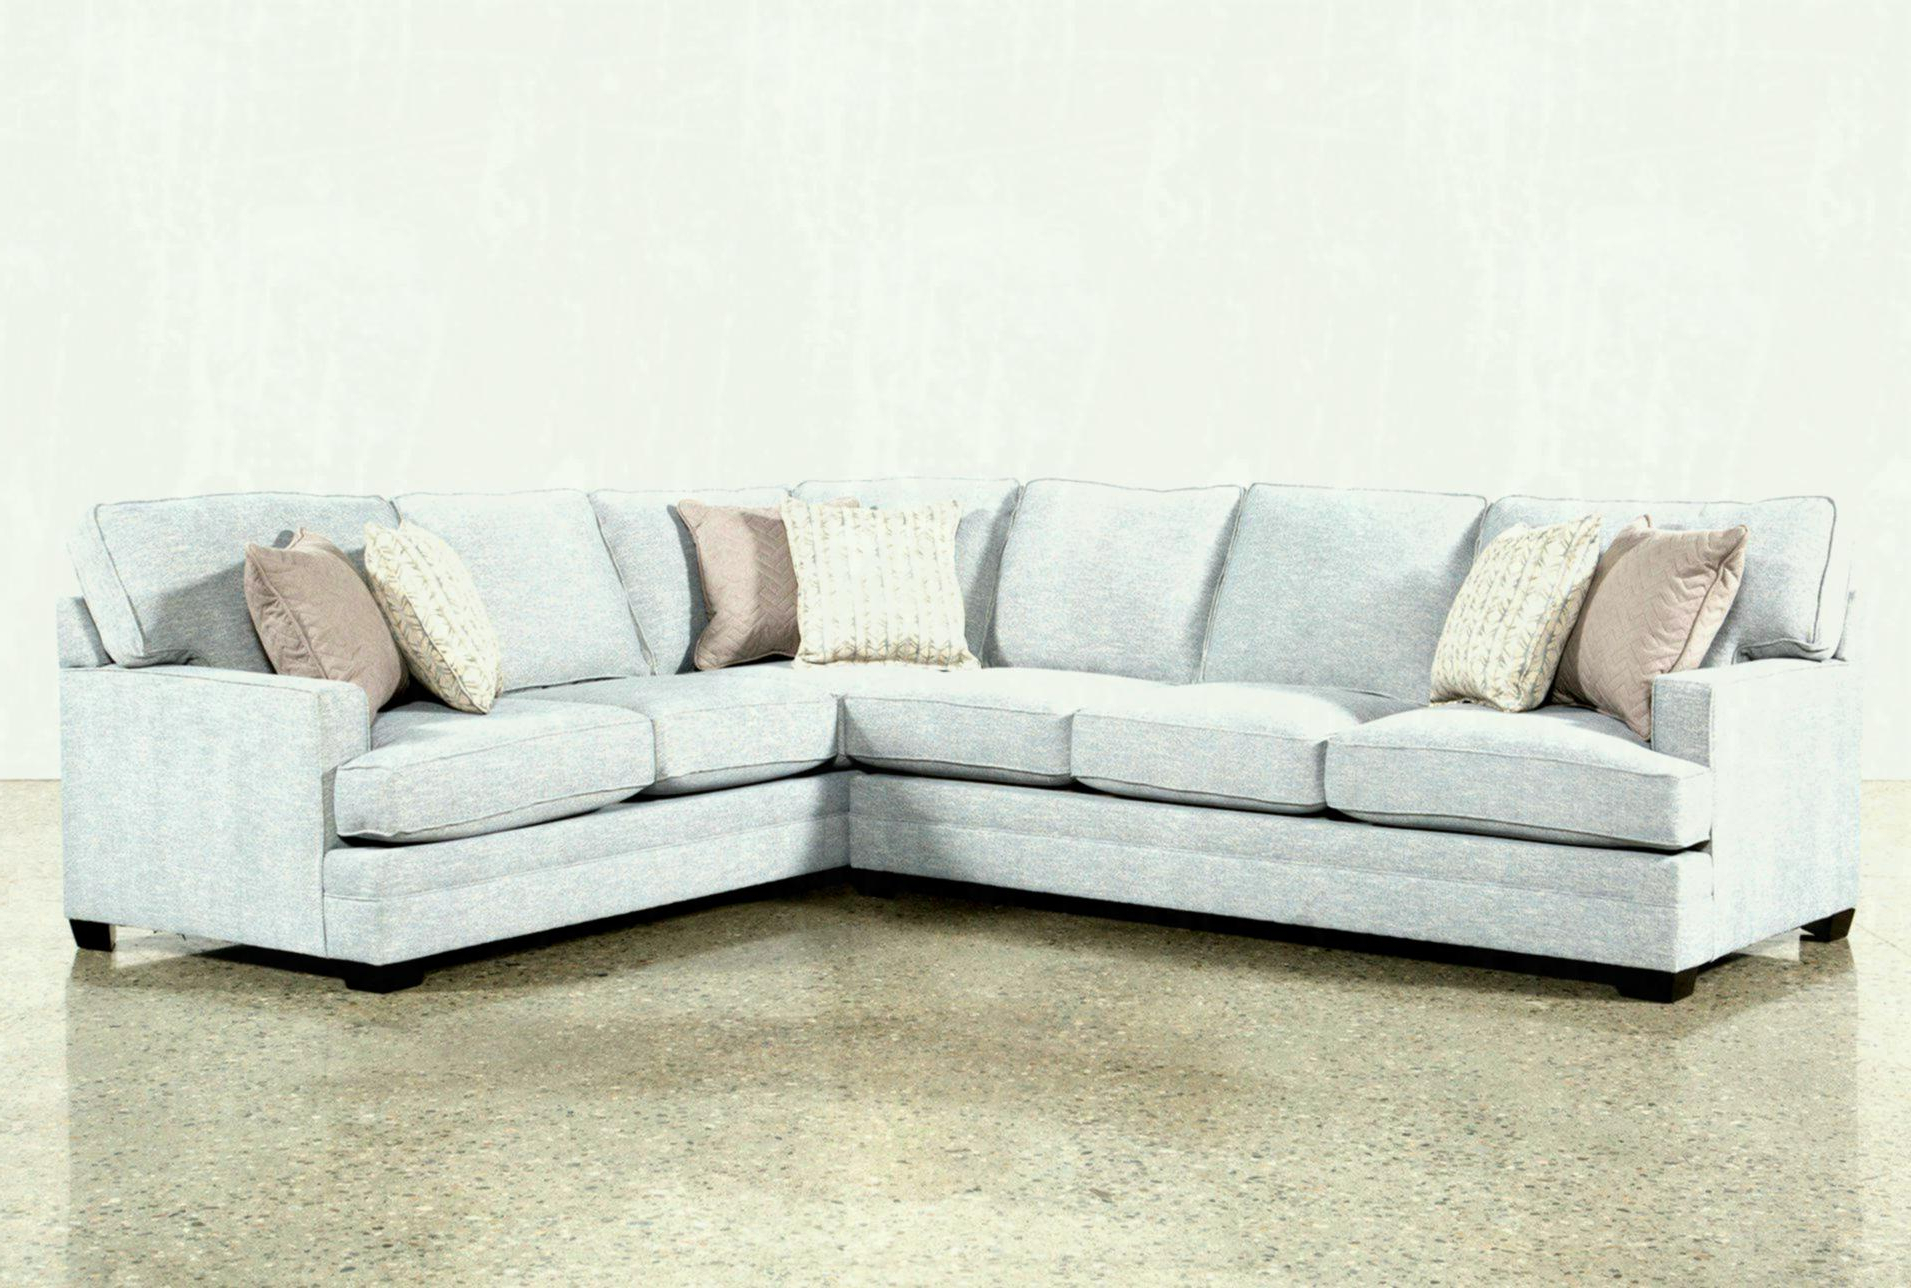 Cosmos Grey 2 Piece Sectionals With Raf Chaise Within 2019 Mix And Match Seats Living Spaces – Garage Plans With Living Space (View 12 of 20)